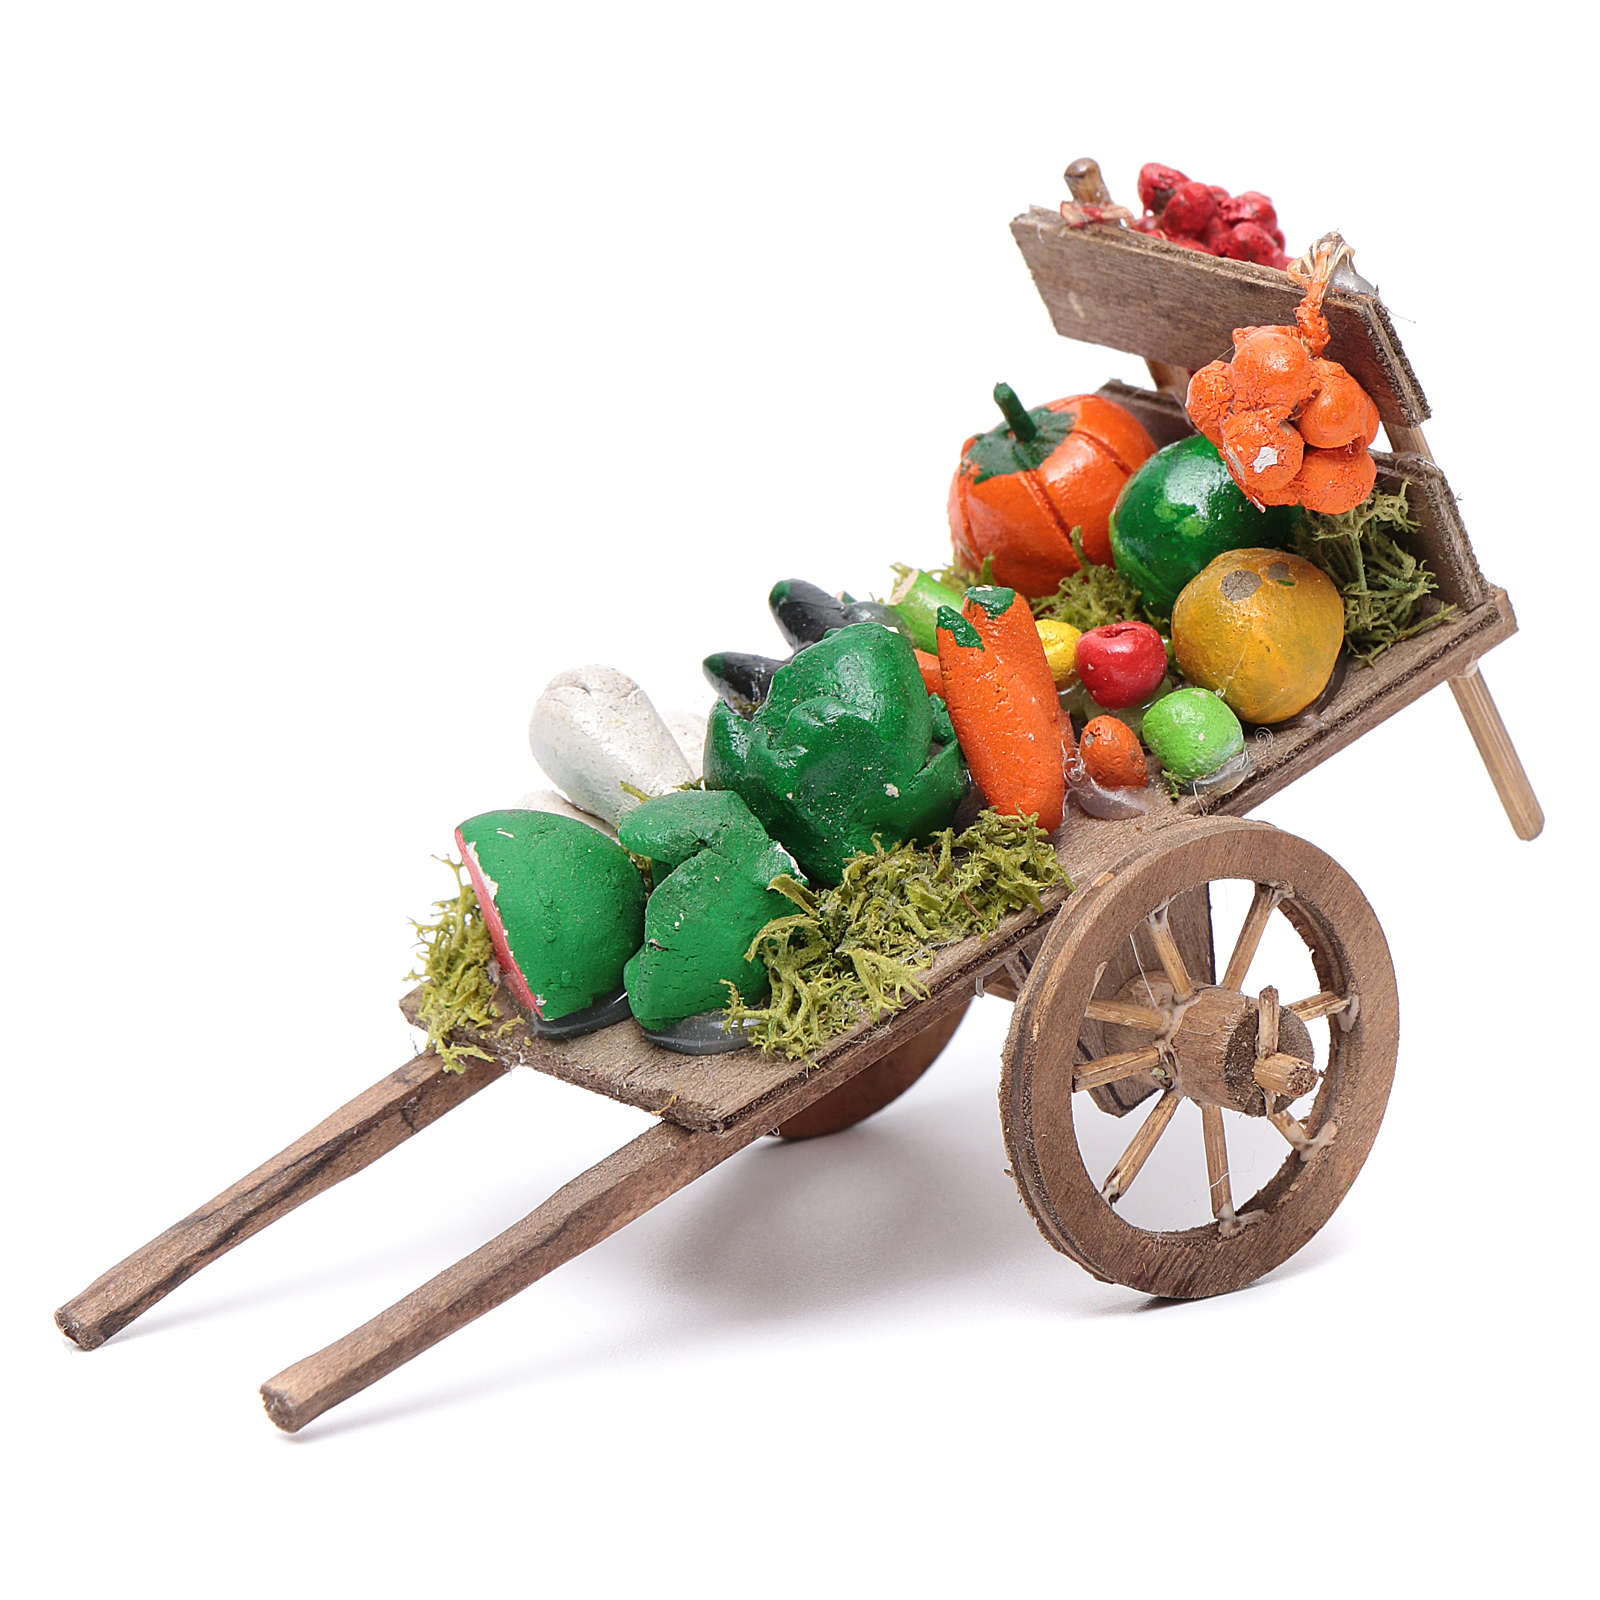 Neapolitan Nativity accessory, fruit and vegetable cart 8x12x7cm 4